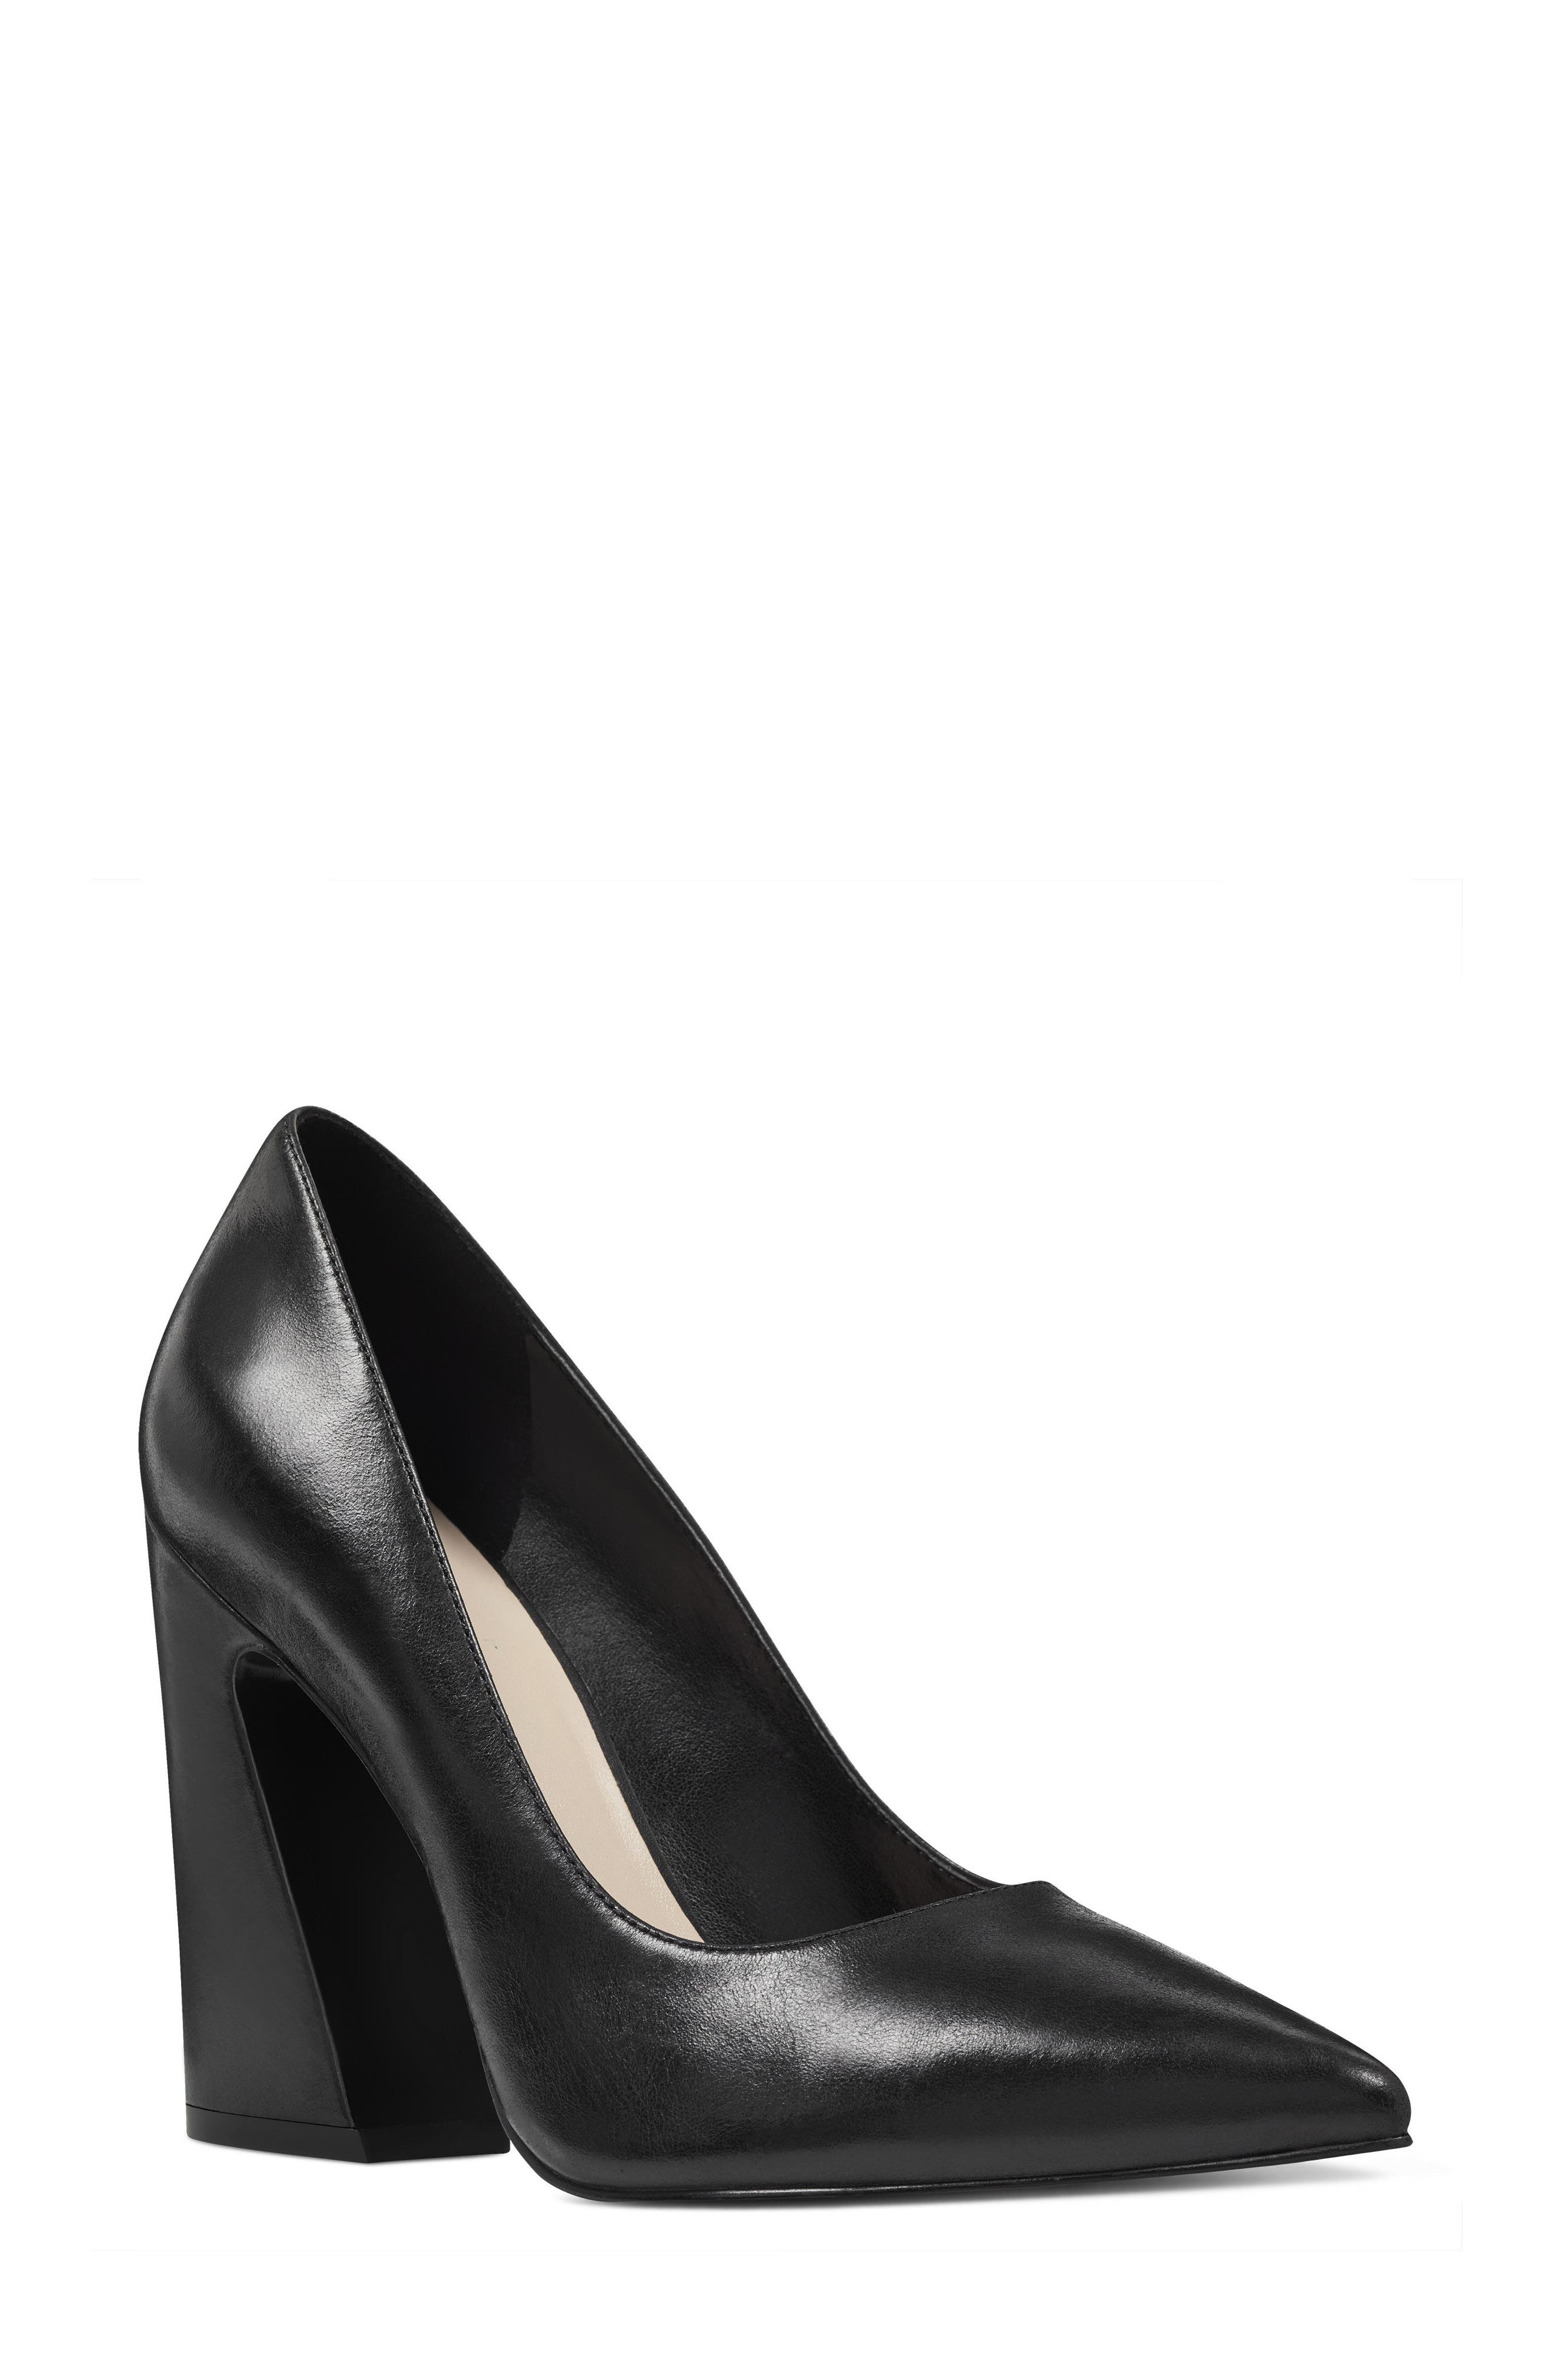 NINE WEST Henra Pointy Toe Pump, Main, color, 001